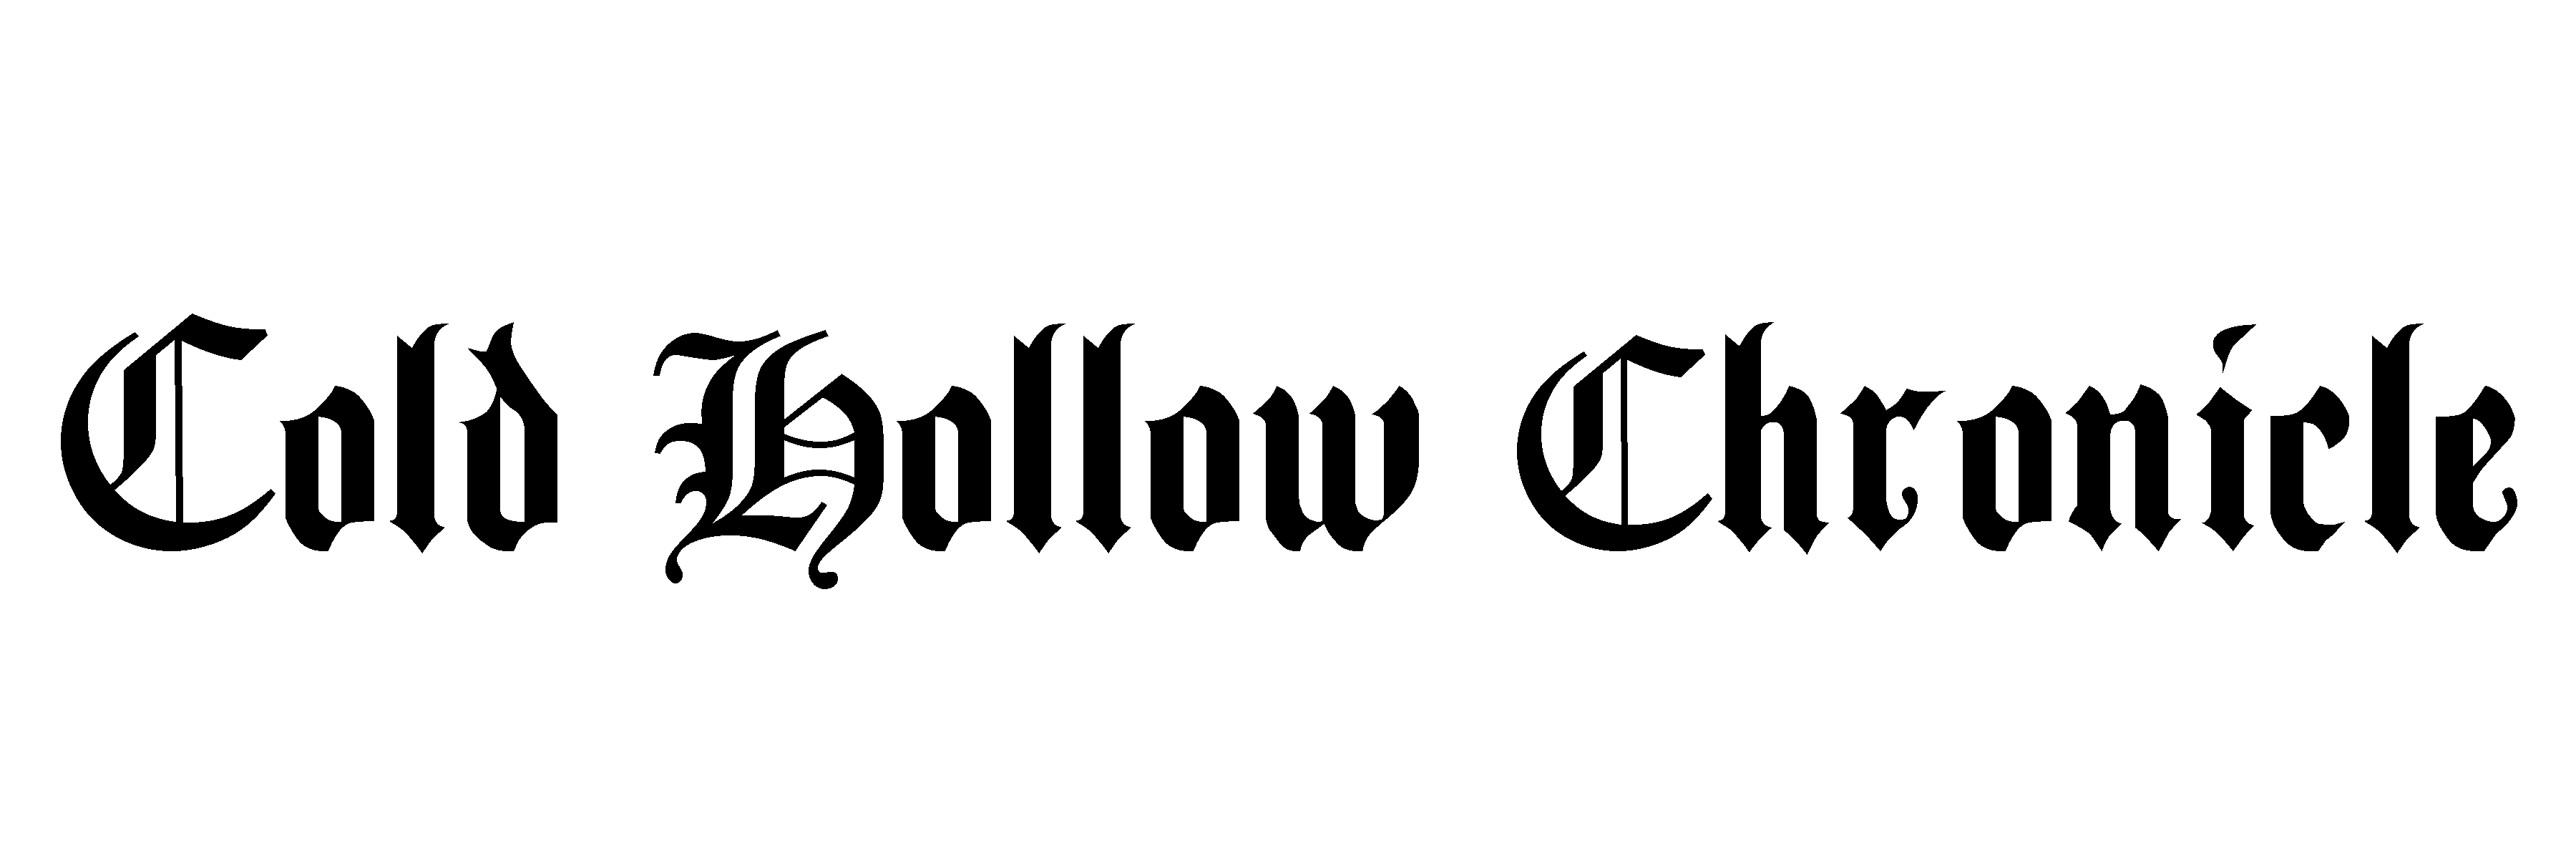 Cold Hollow Chronicle